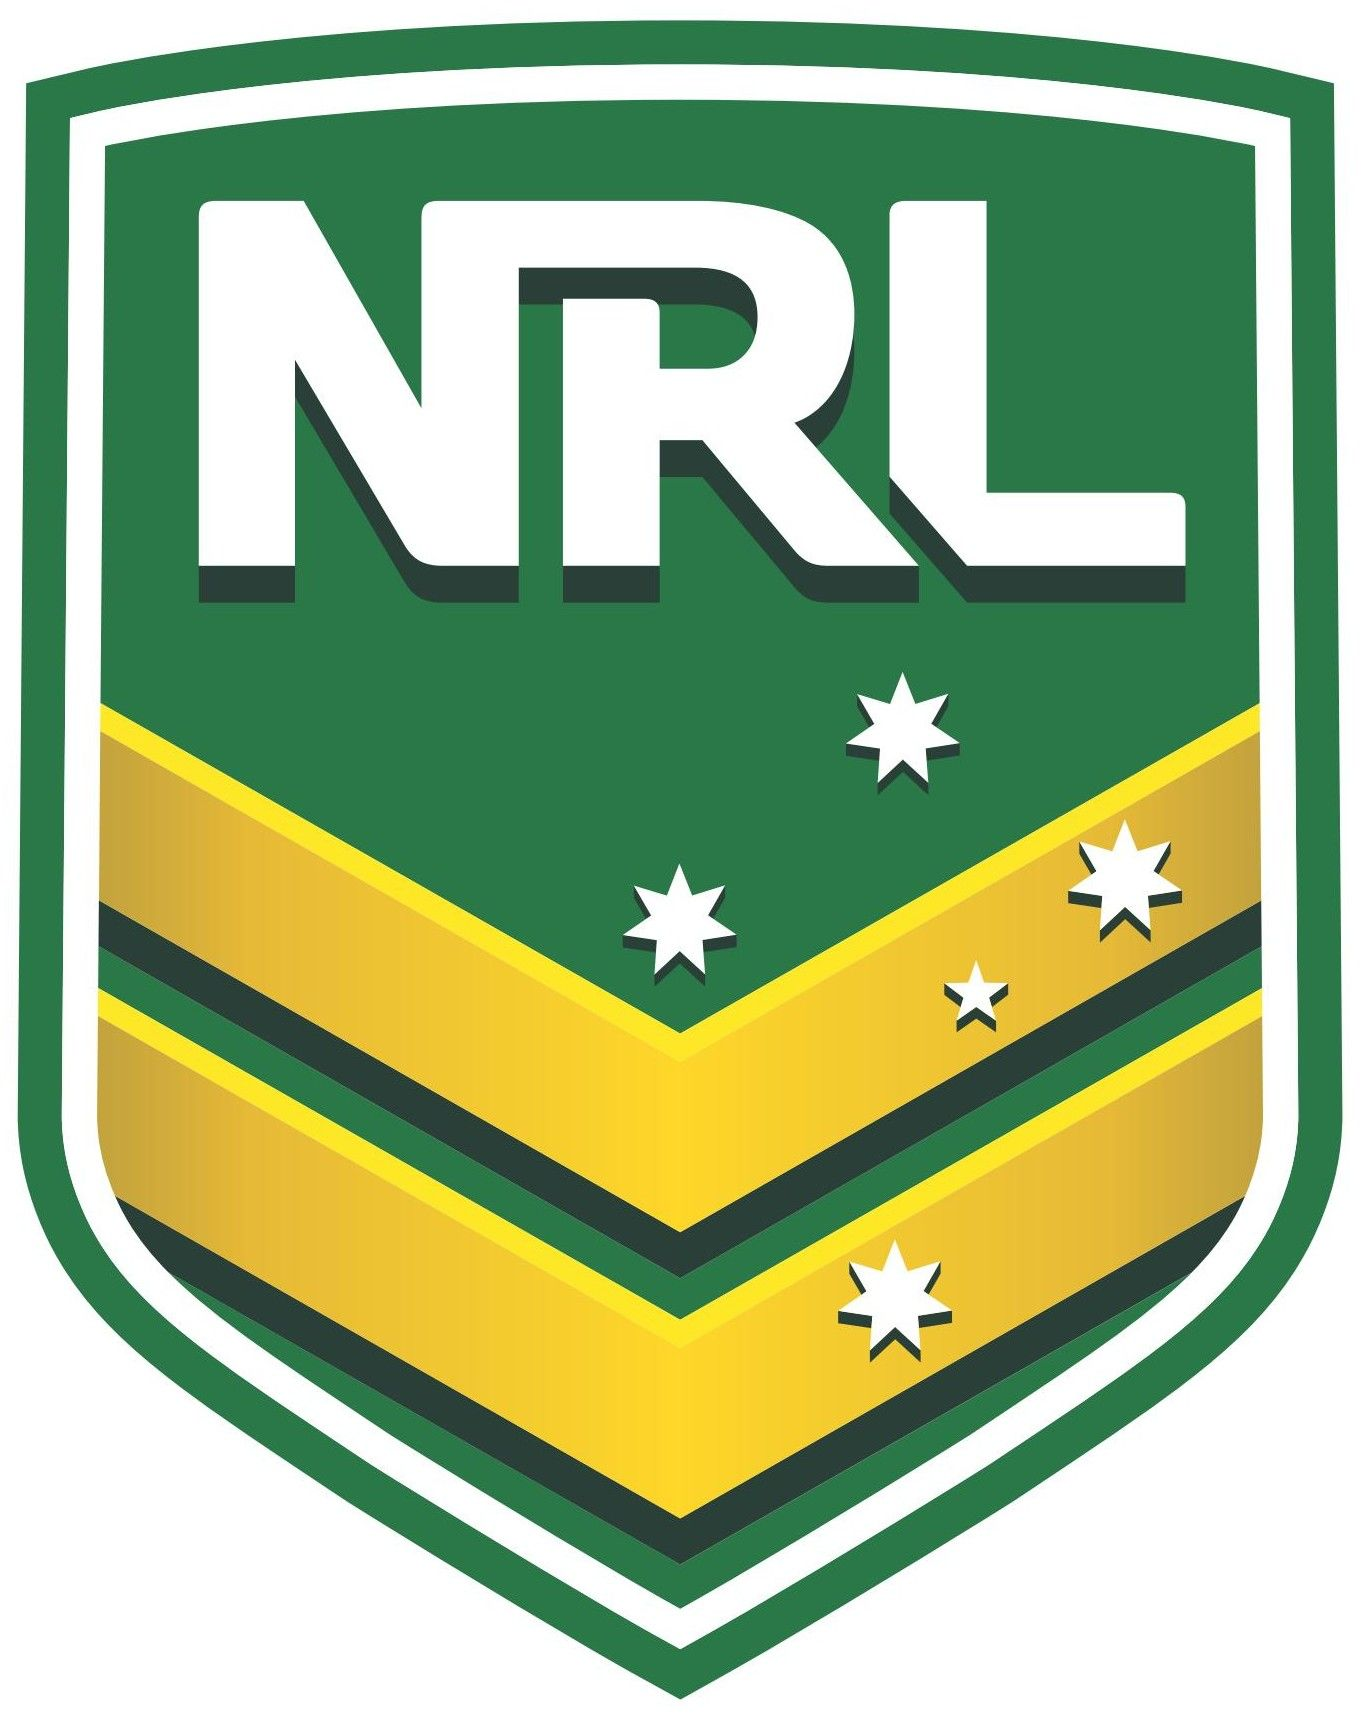 NRL Logo (National Rugby League) Vector Free Logo EPS